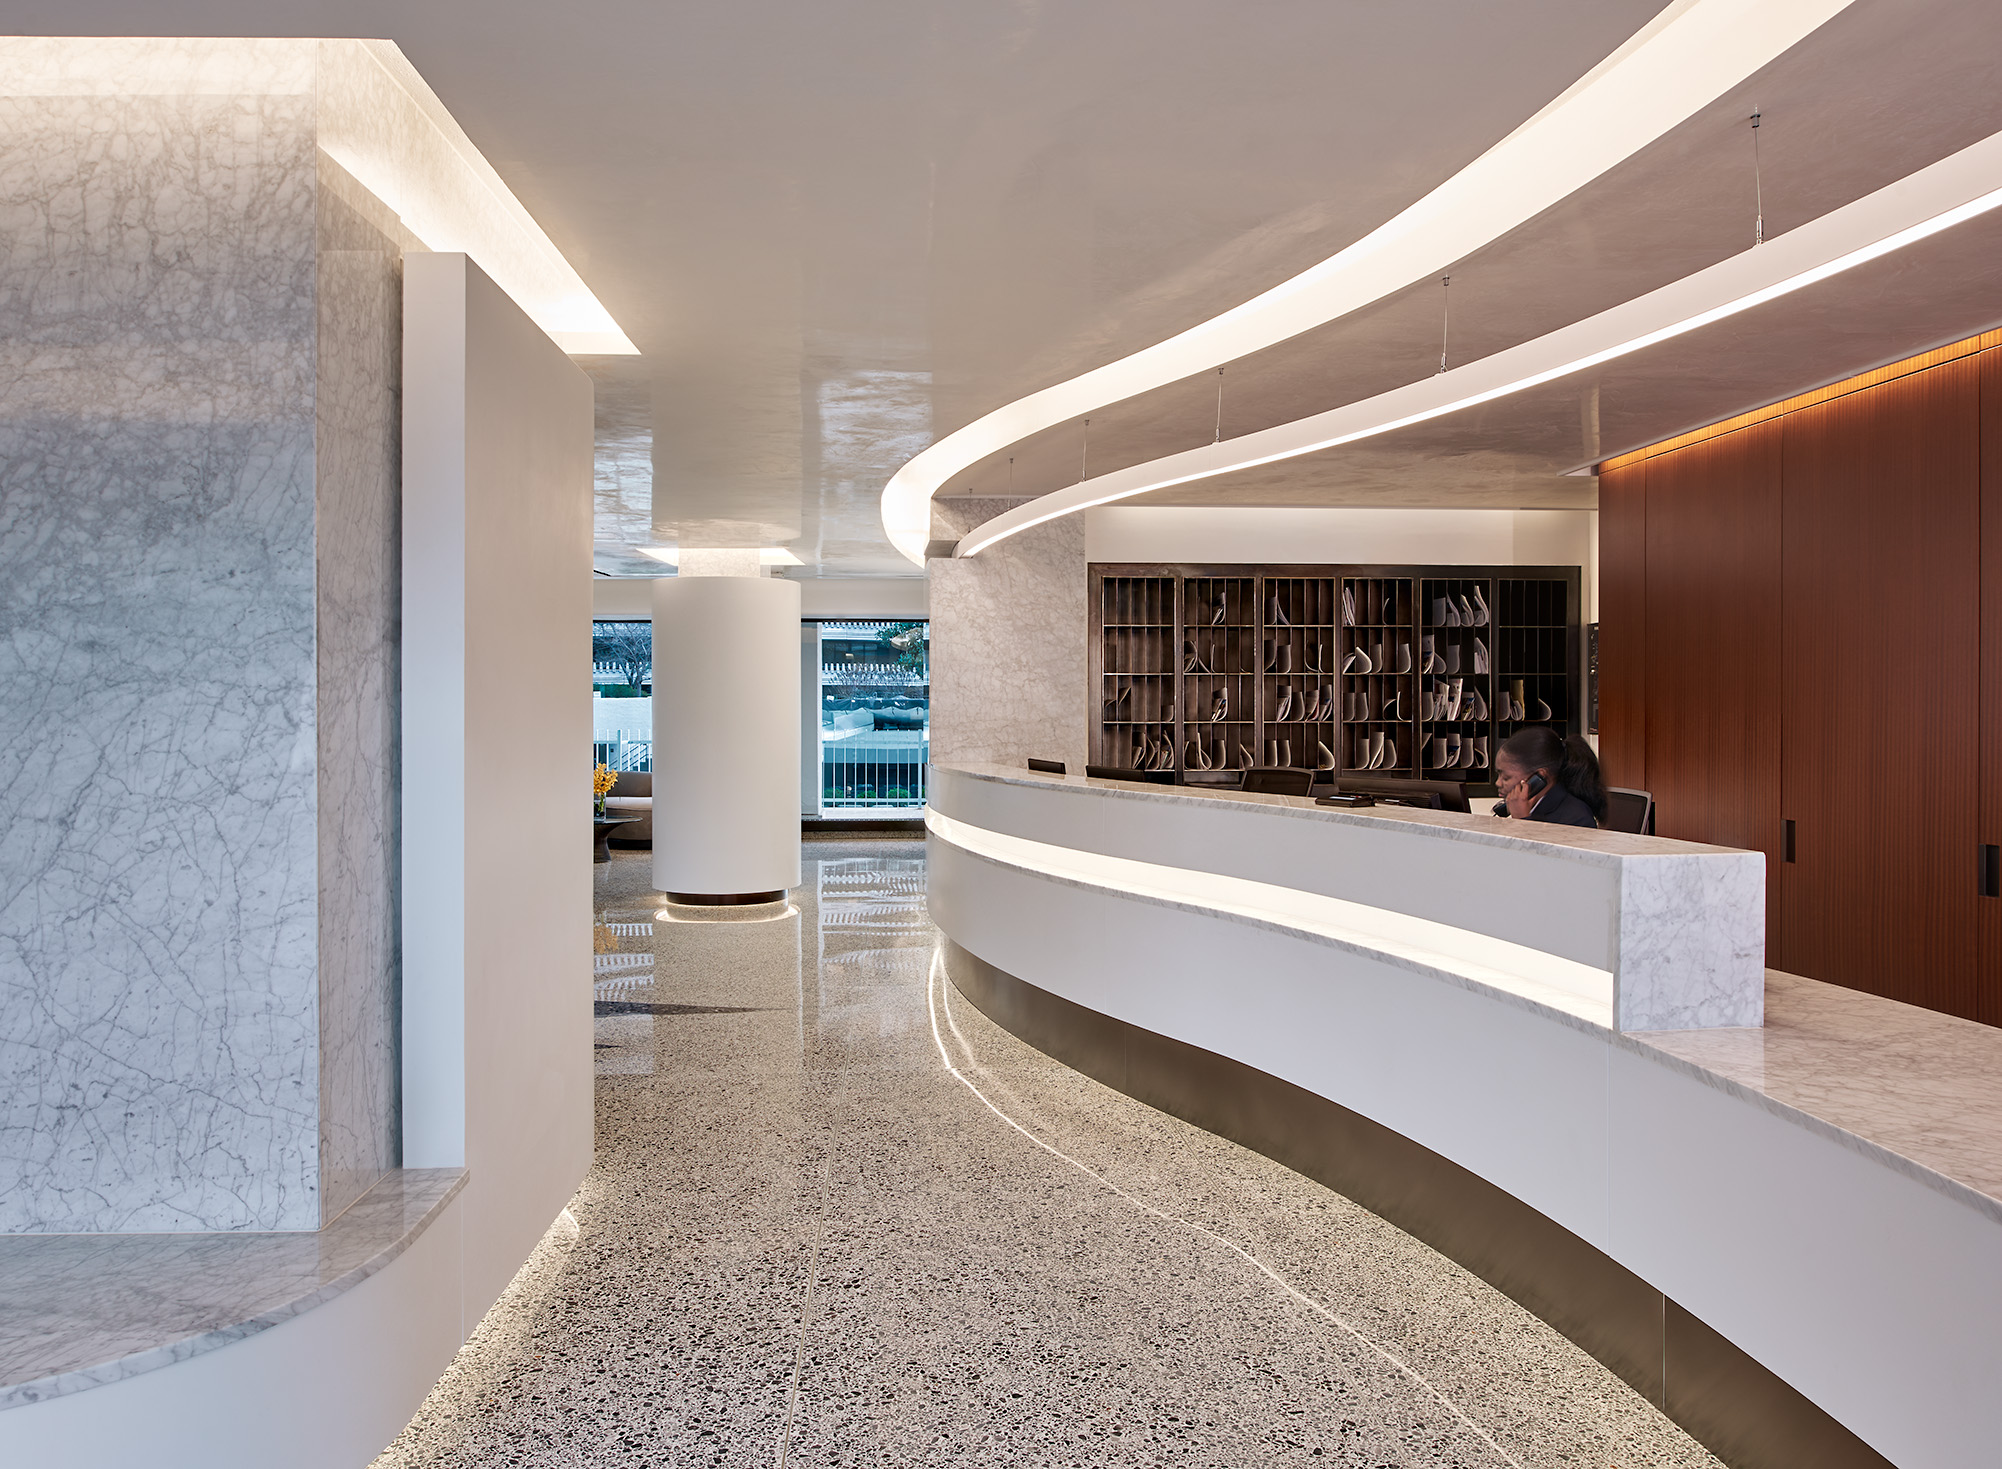 Watergate_Lobby_McInturff_Architects_2_Anice.jpg